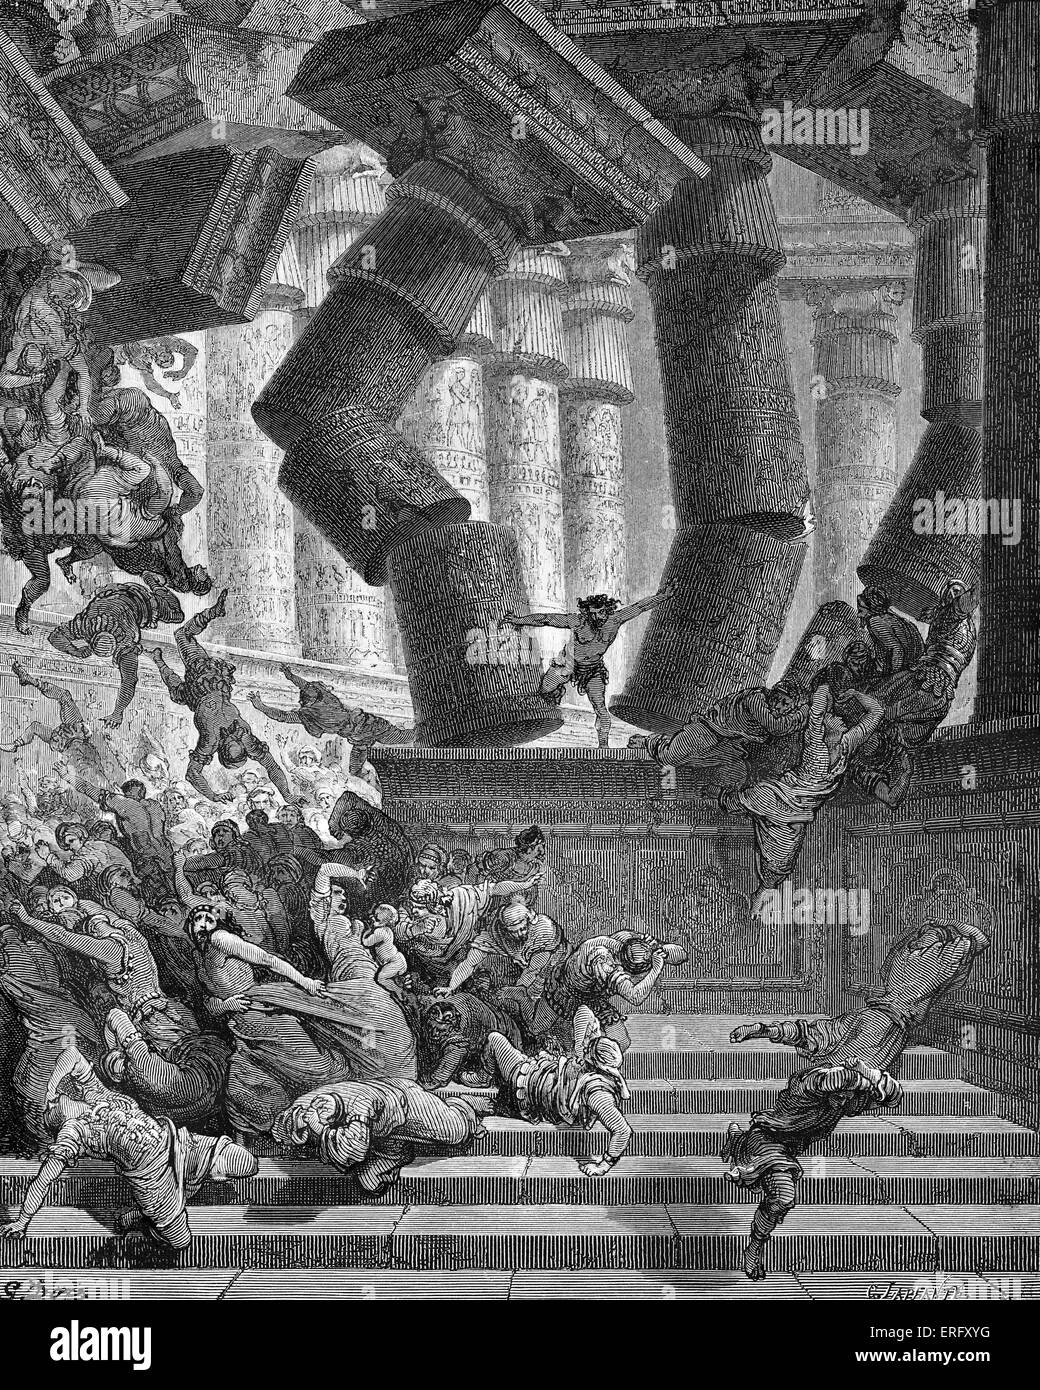 The death of Samson - Samson pulls down the temple of the Philistines at Gaza, killing himself and his enemies inside - Stock Image